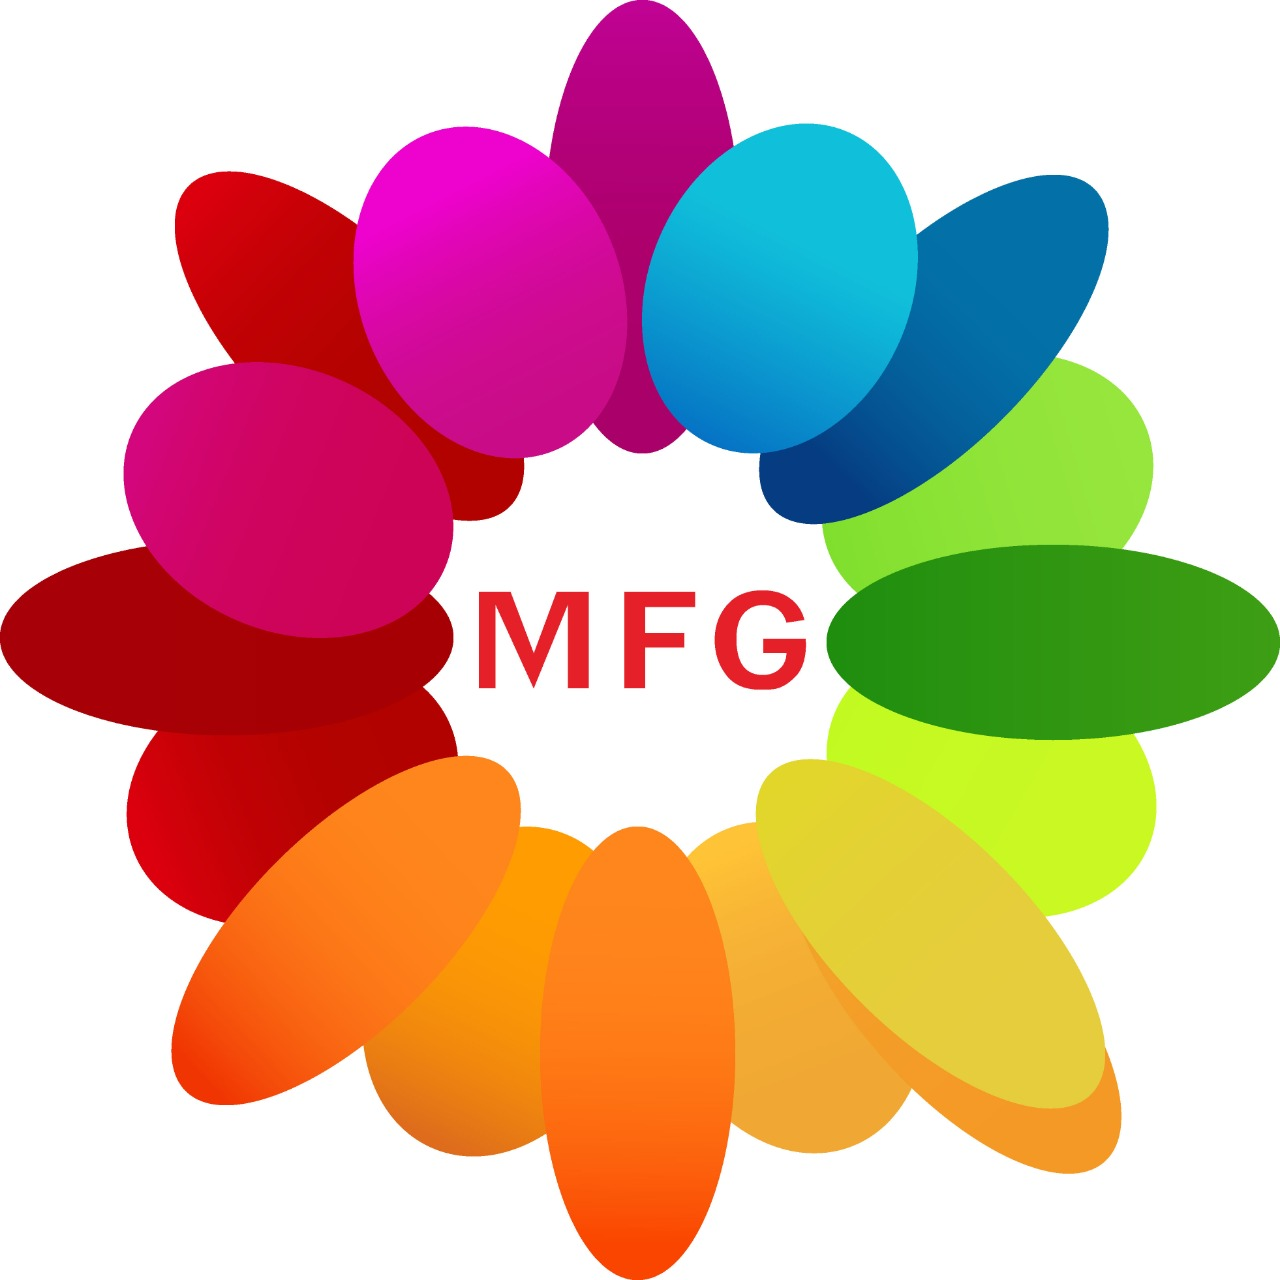 Lavender orchids beautifully Arranged in Vase with heart shaped chocolate cake